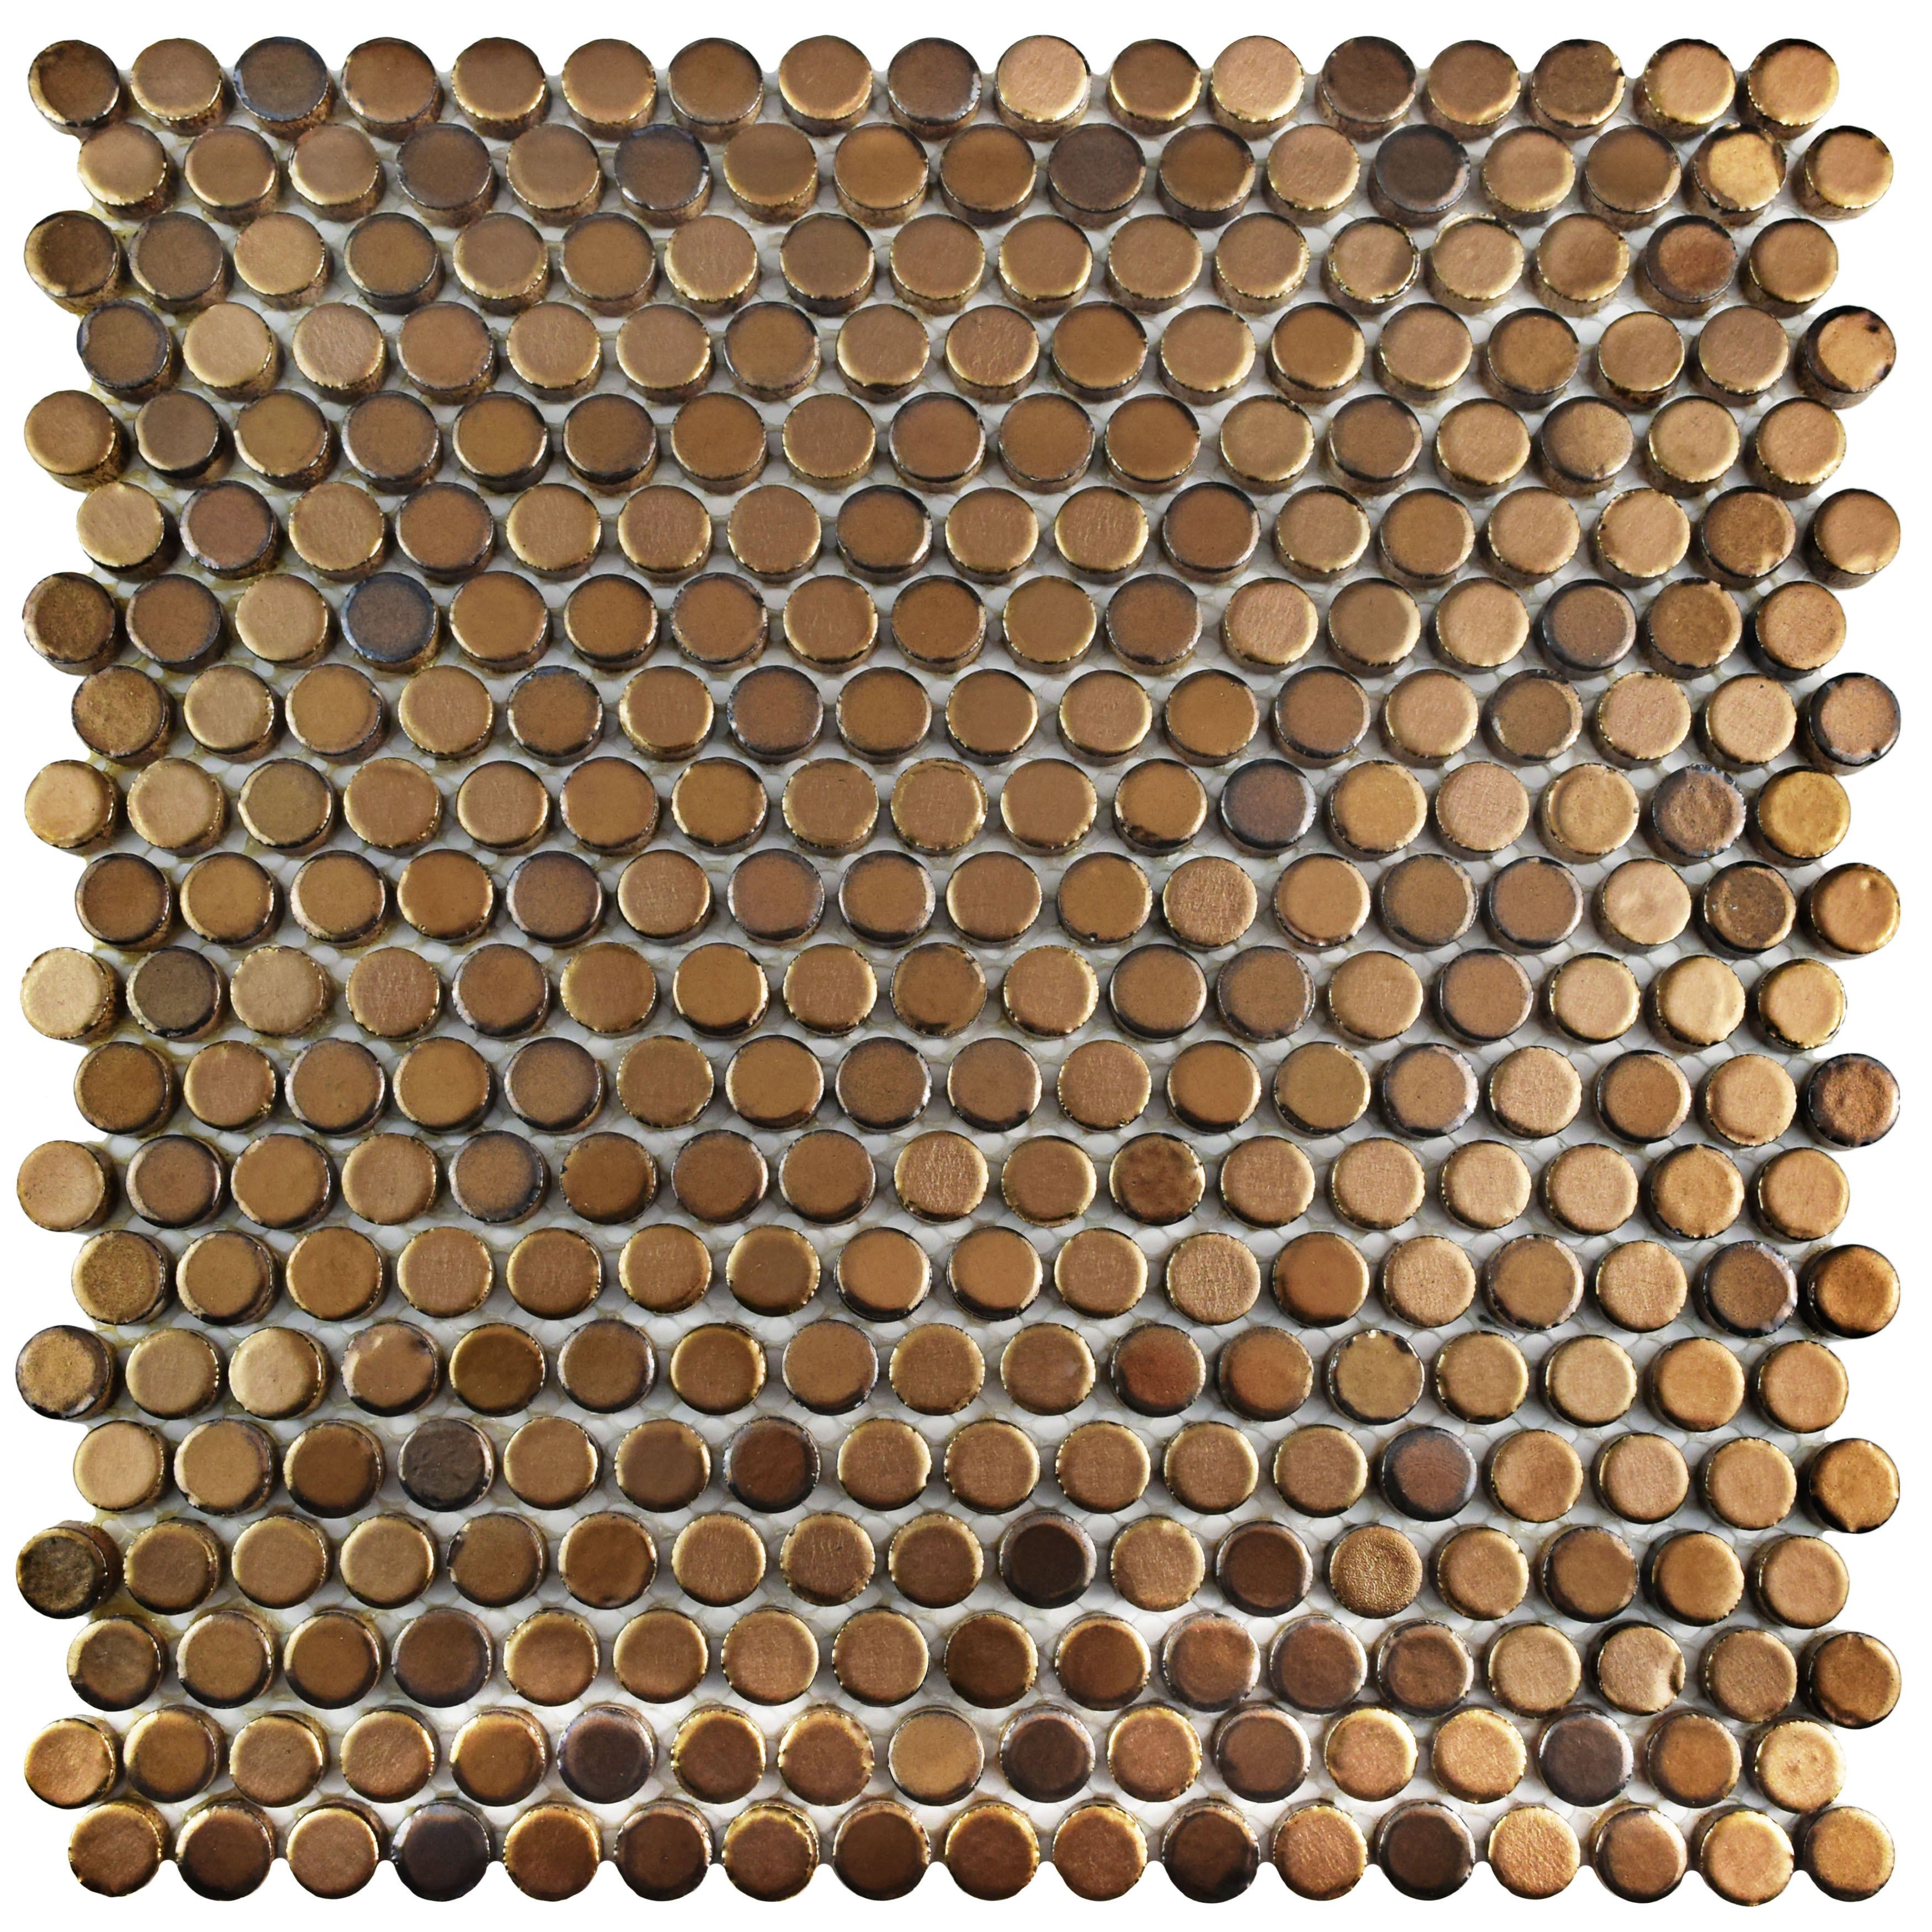 Shop Somertile 11 25x11 75 Inch Asteroid Penny Round Gold Porcelain Mosaic Floor And Wall Tile 10 Tiles 9 4 Sqft Overstock 11047677